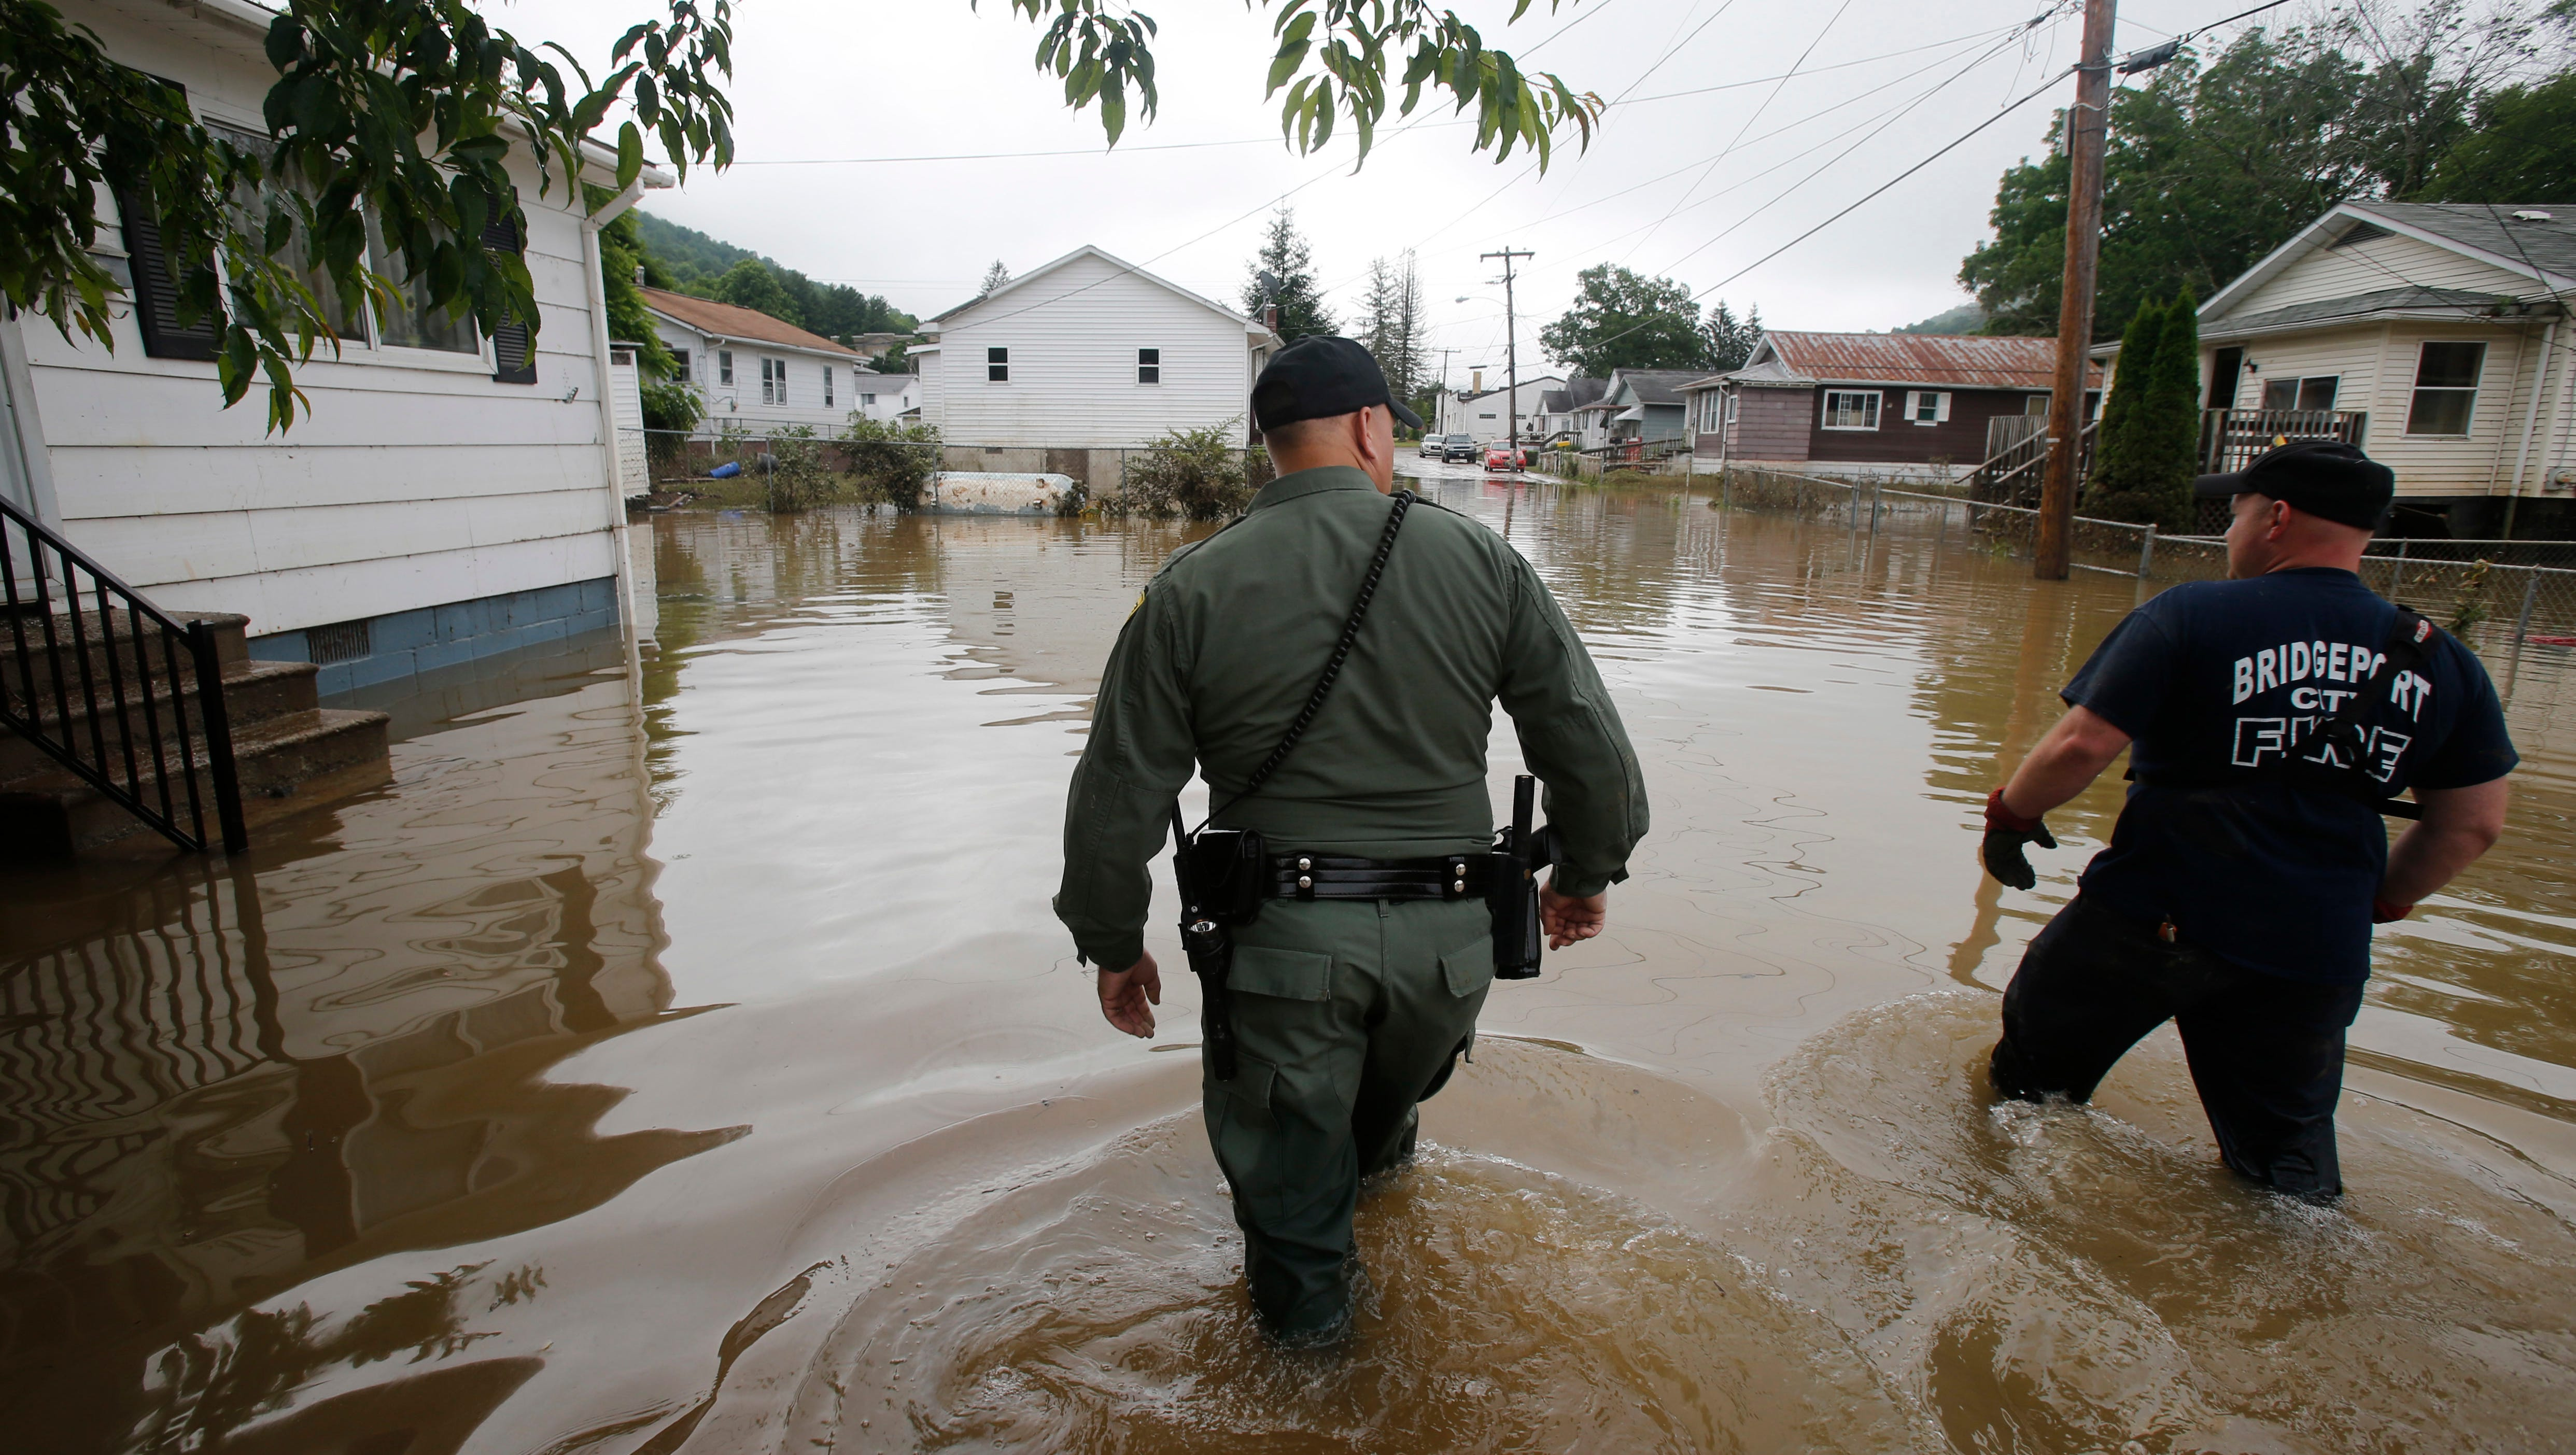 W Va Flooding Armed Patrols Formed As Wary Residents Eye More Rain